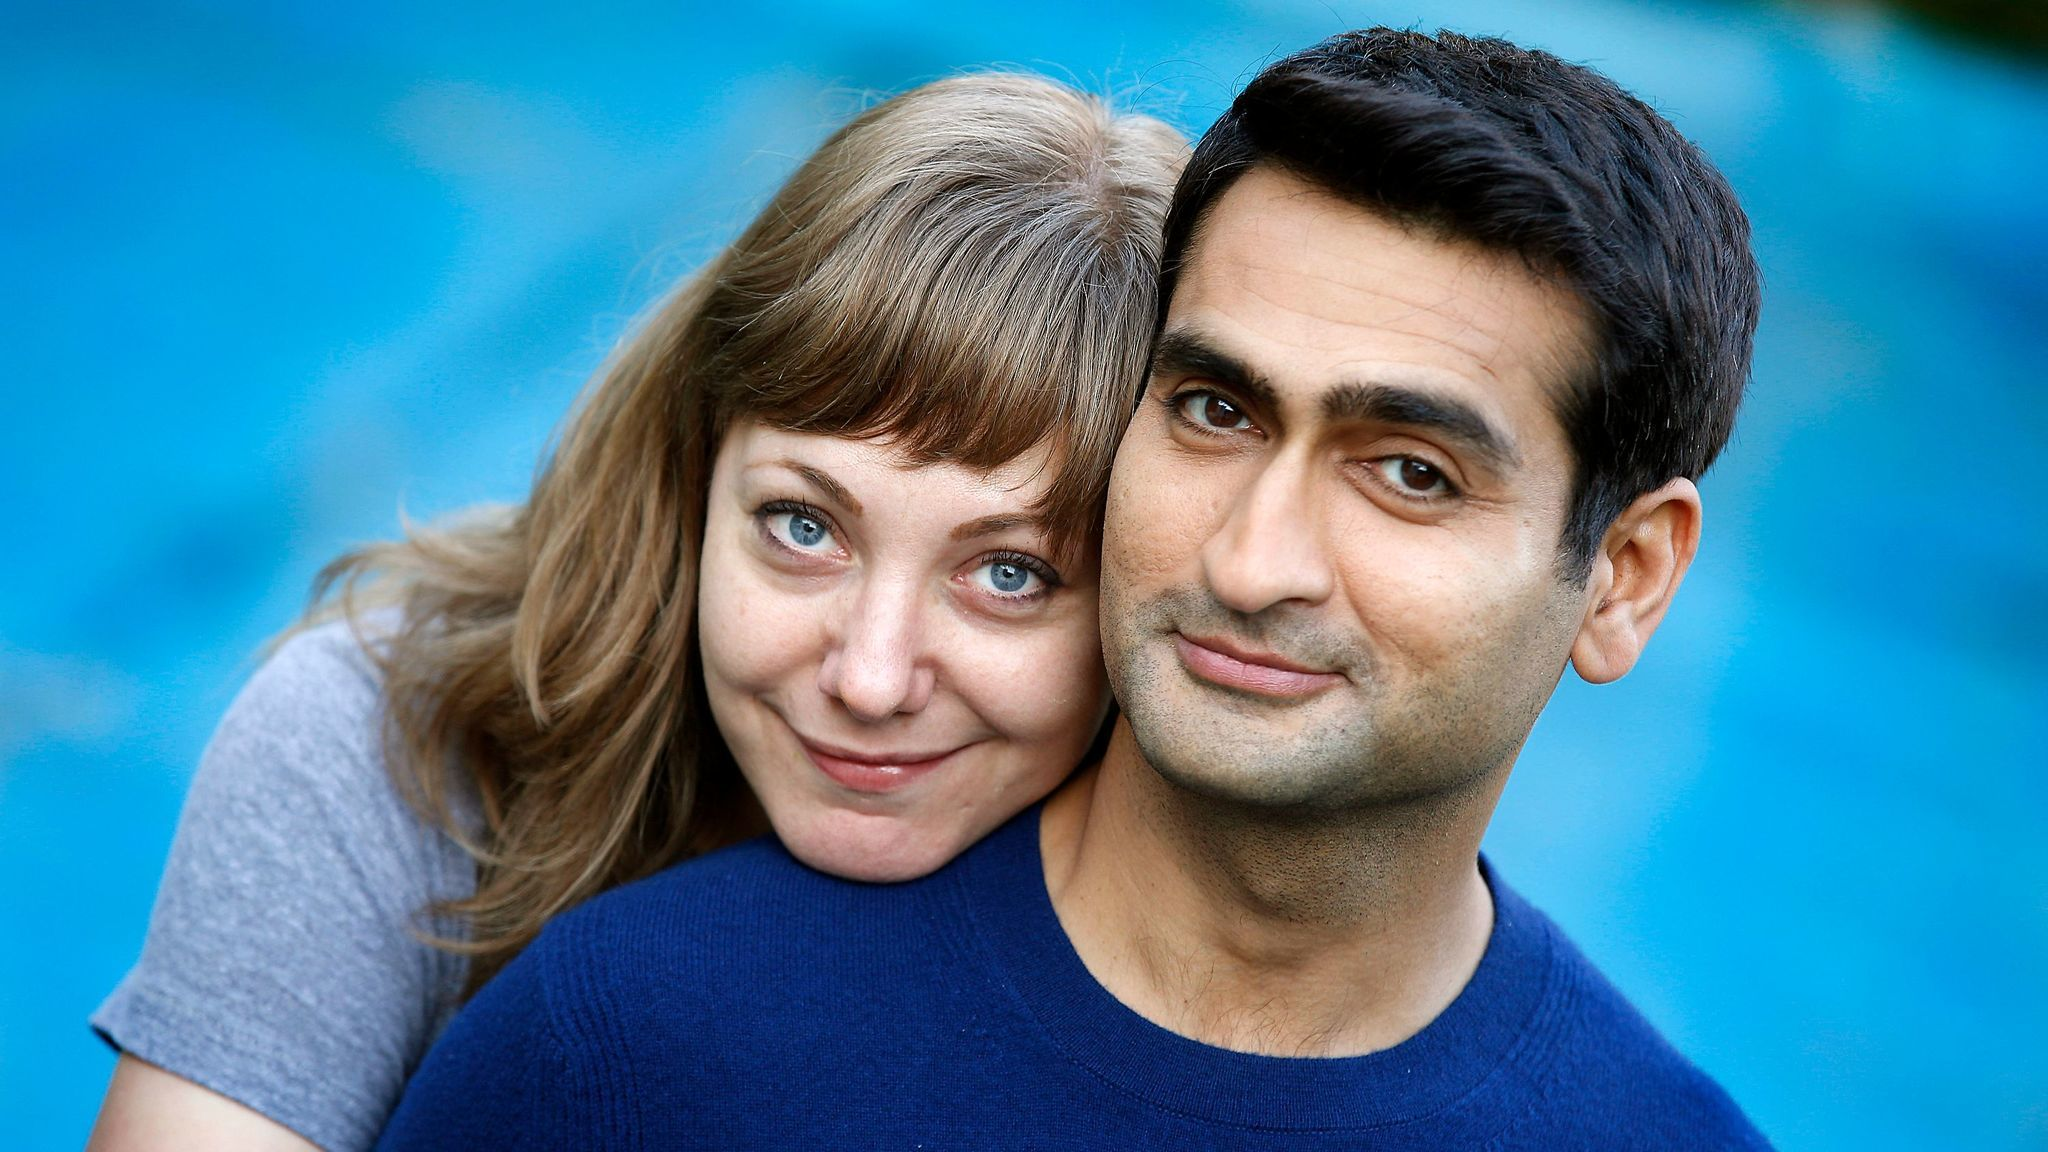 Kumail Nanjiani and Emily V. Gordon. (Kirk McKoy / Los Angeles Times)